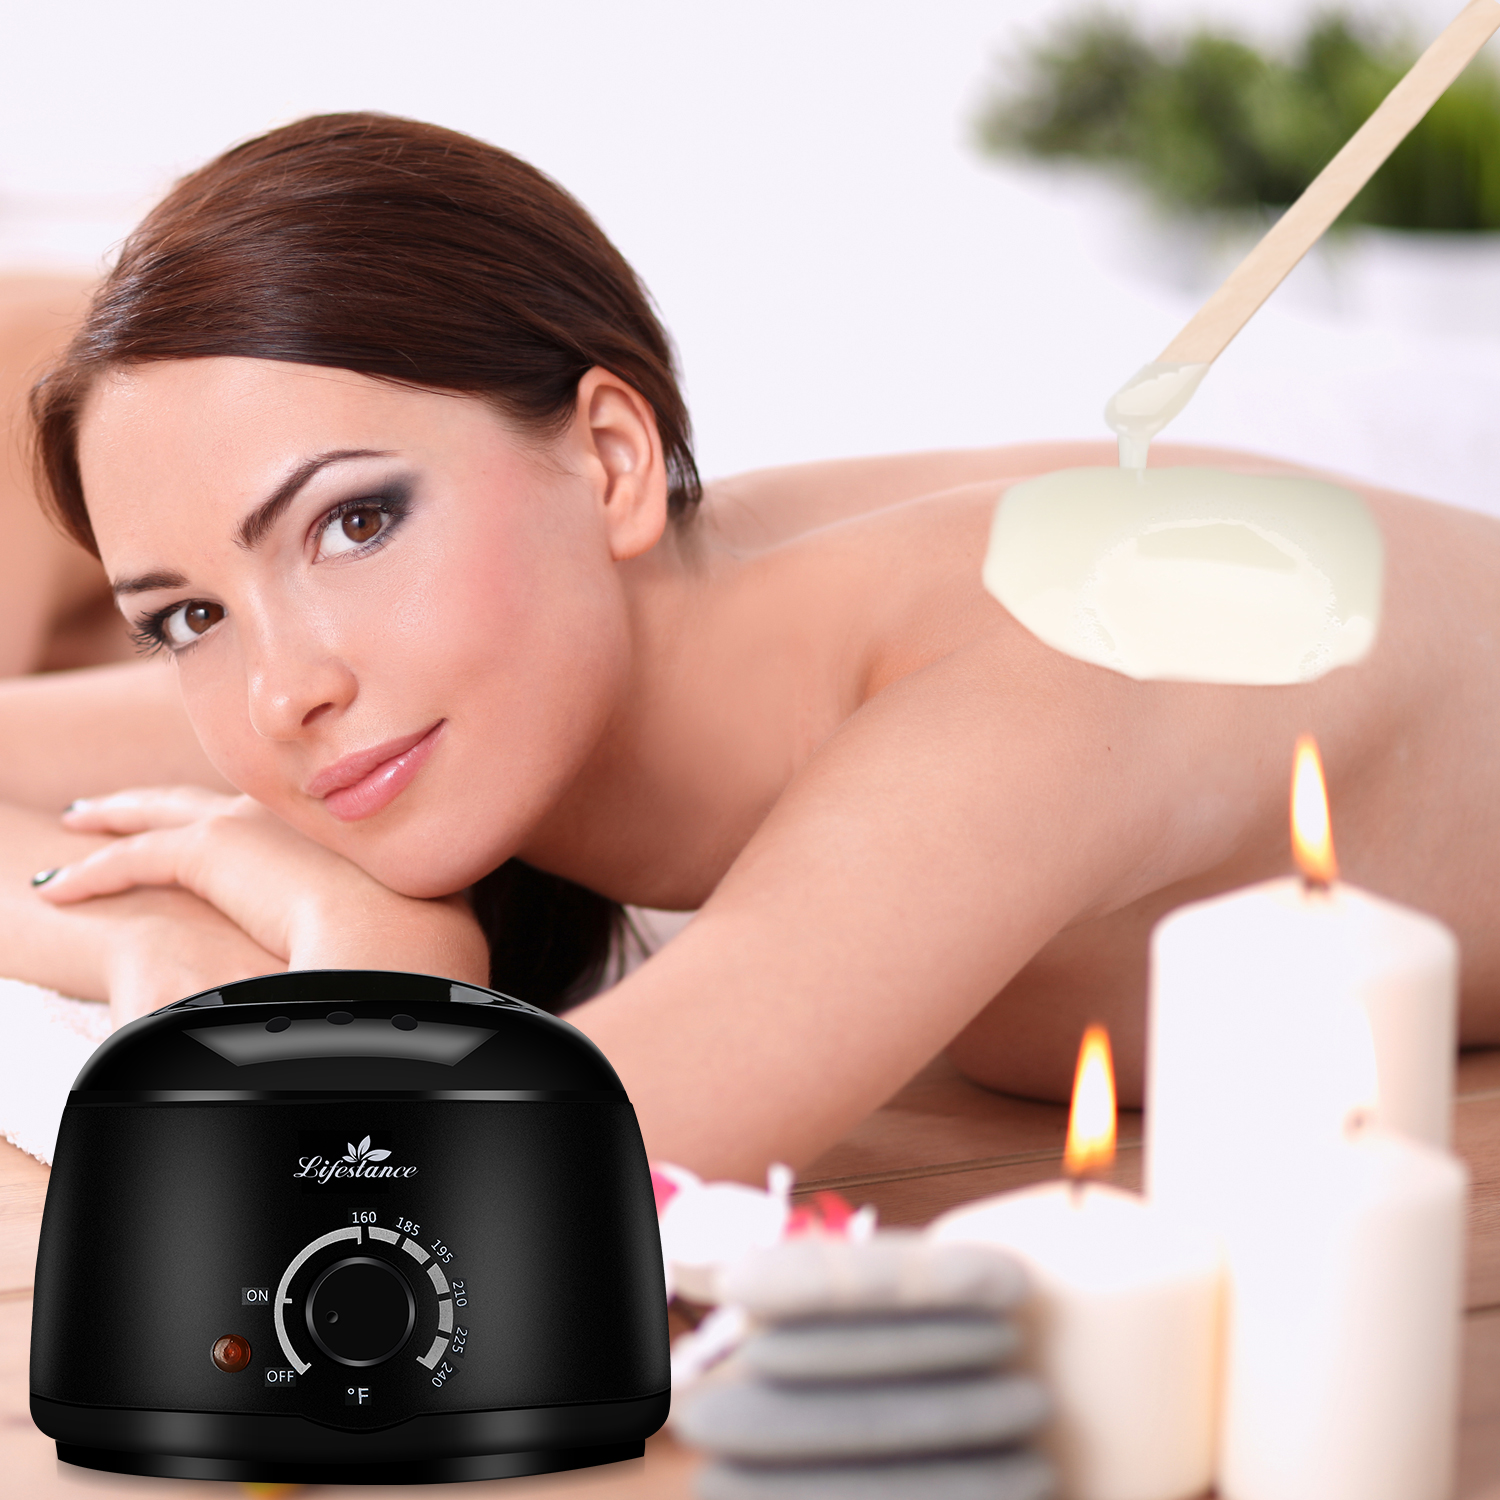 Lifestance 500cc Electric Wax Warmer Professional Hair Removal Wax Heater